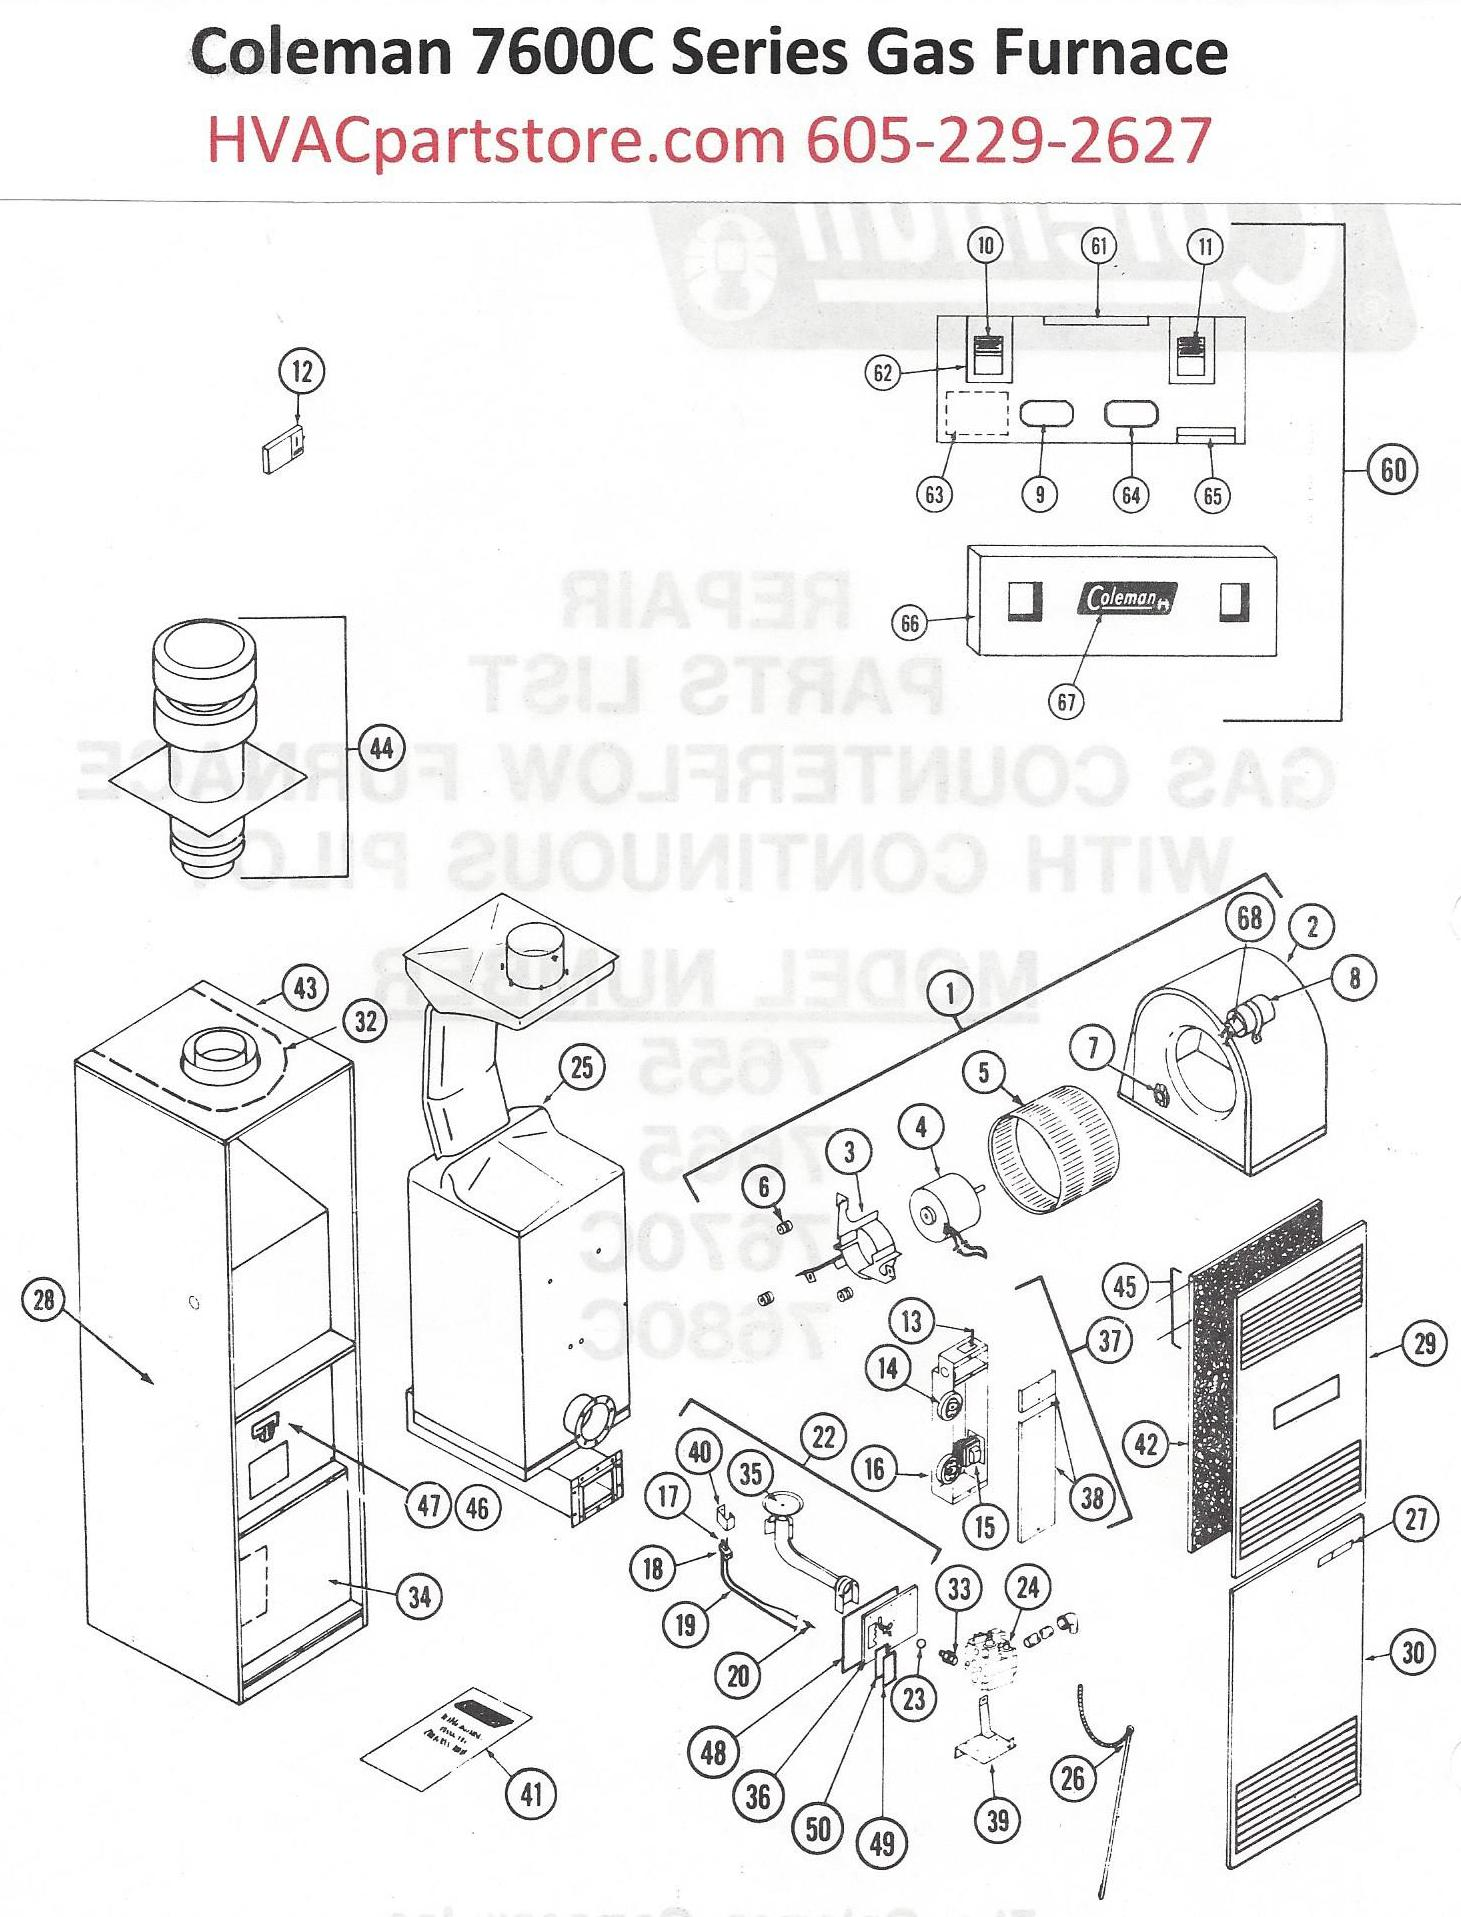 Switch Remote together with Frost Free Refrigerator Wiring Diagram Pdf additionally QC2a 16987 together with Holzgasantriebdm 1 additionally Goodman Package Unit Wiring Diagram. on furnace wiring diagram